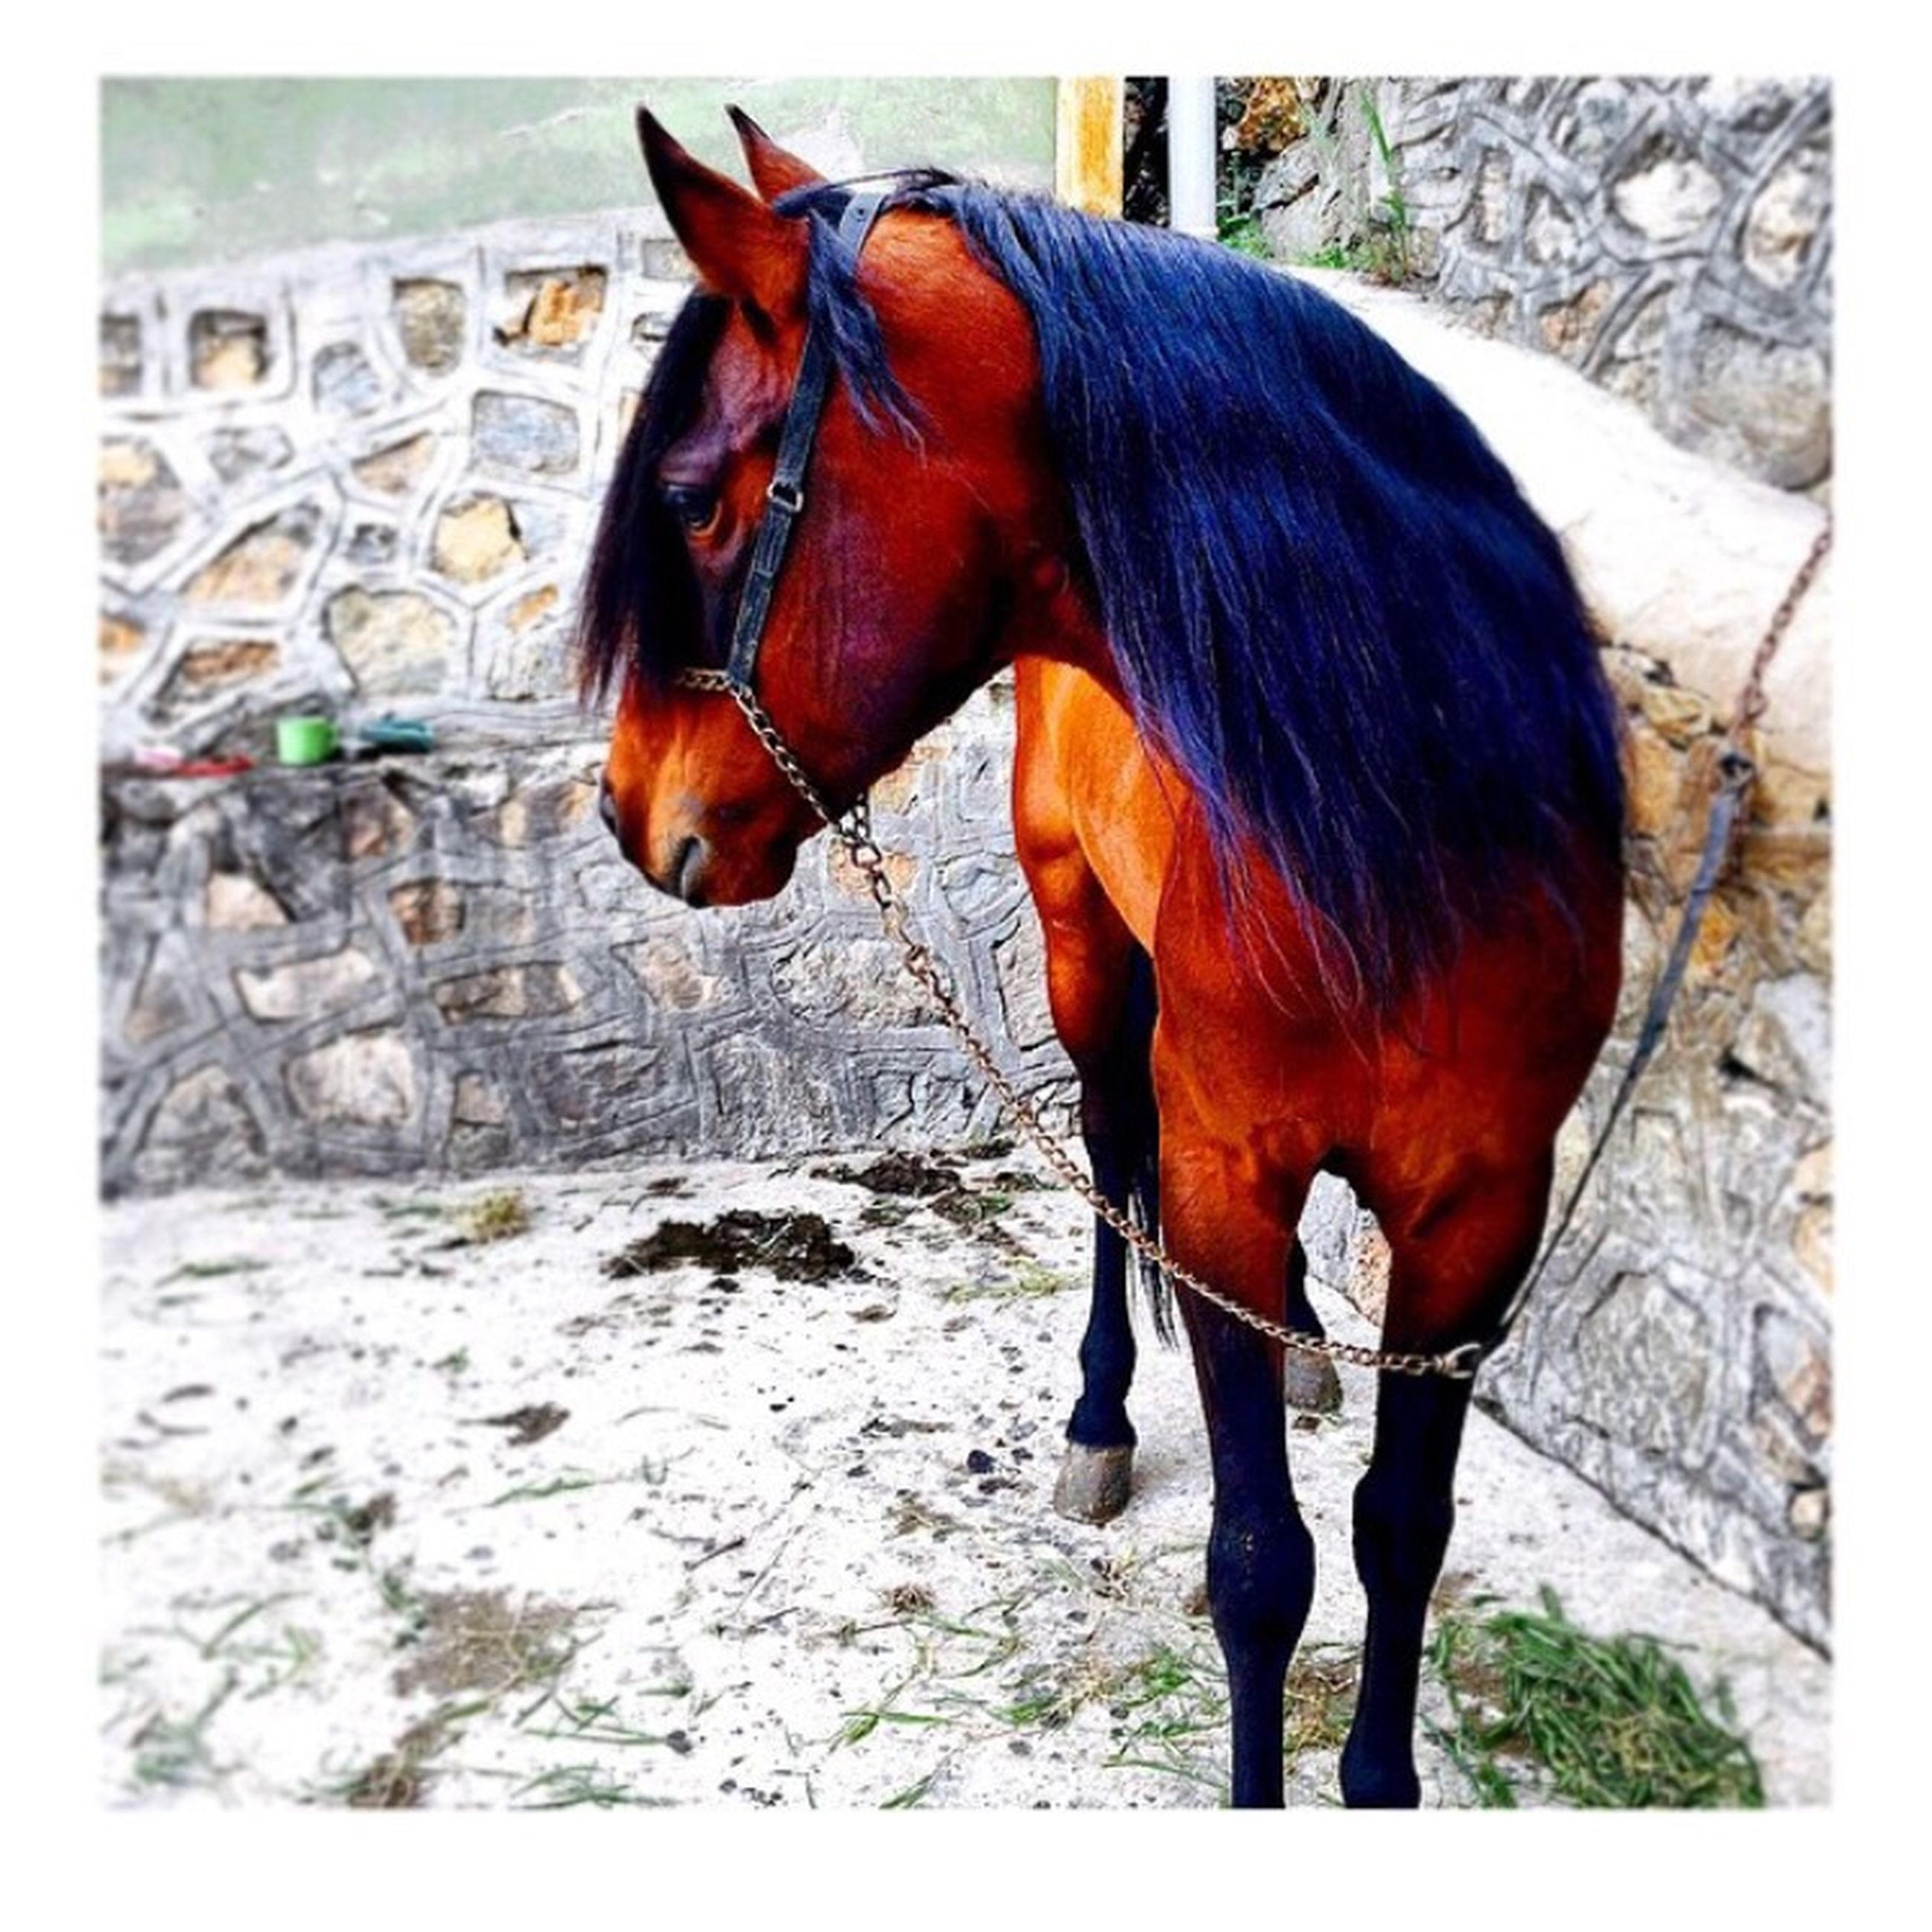 animal themes, transfer print, auto post production filter, livestock, domestic animals, standing, one animal, horse, full length, two animals, brown, side view, zoology, wildlife, vertebrate, mammal, animals in the wild, orange color, outdoors, animal